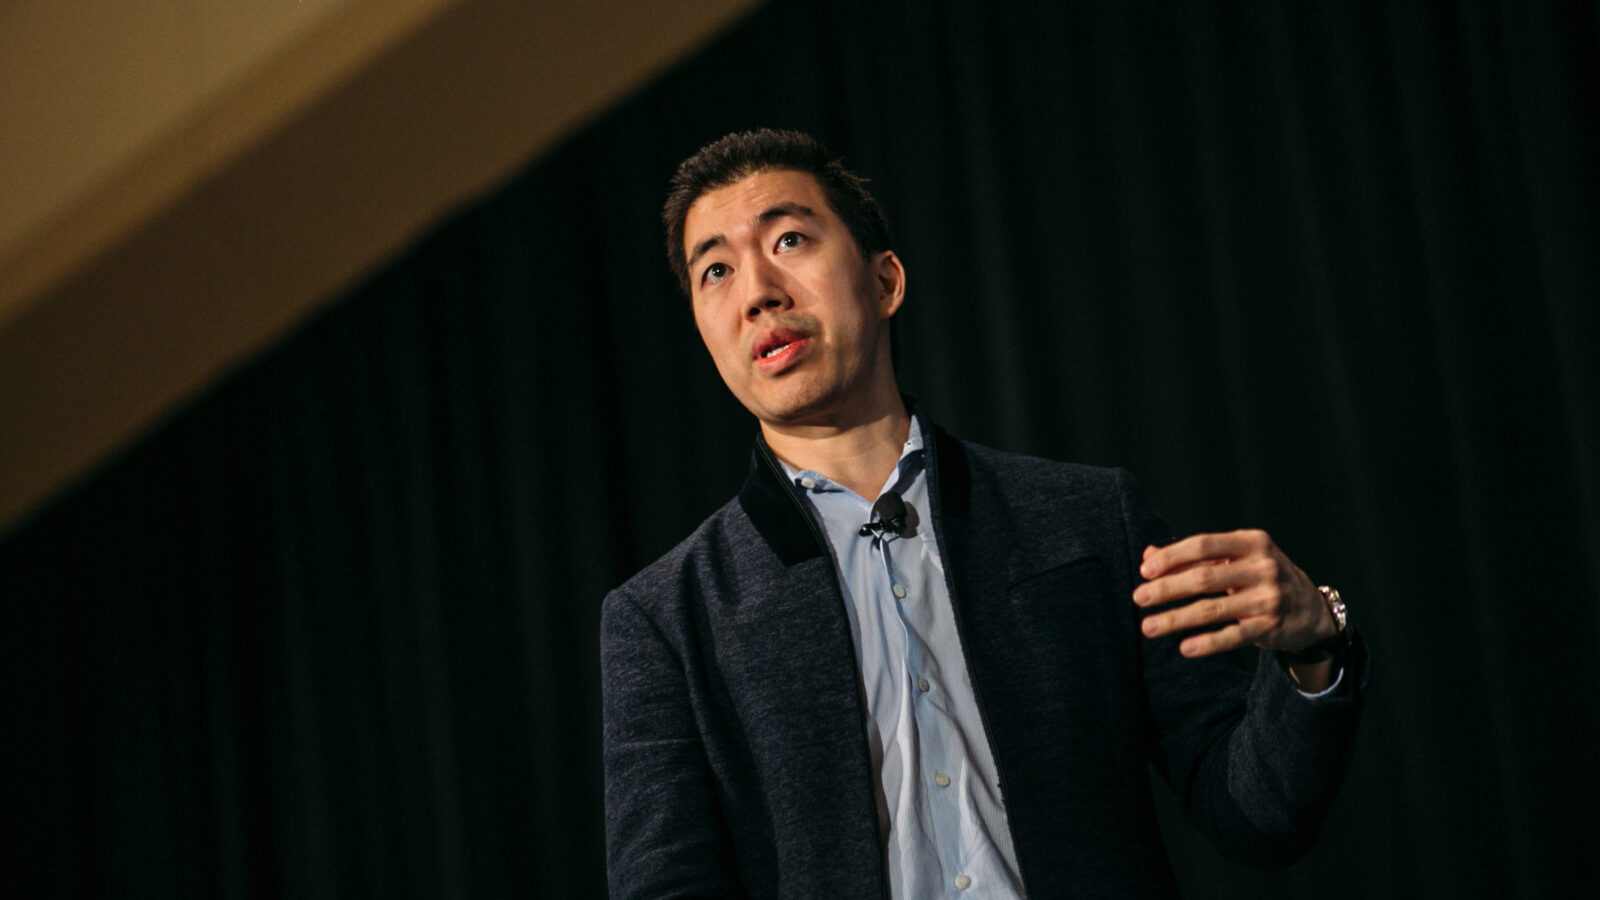 You had questions for David Liu about CRISPR, prime editing, and advice to young scientists. He has answers